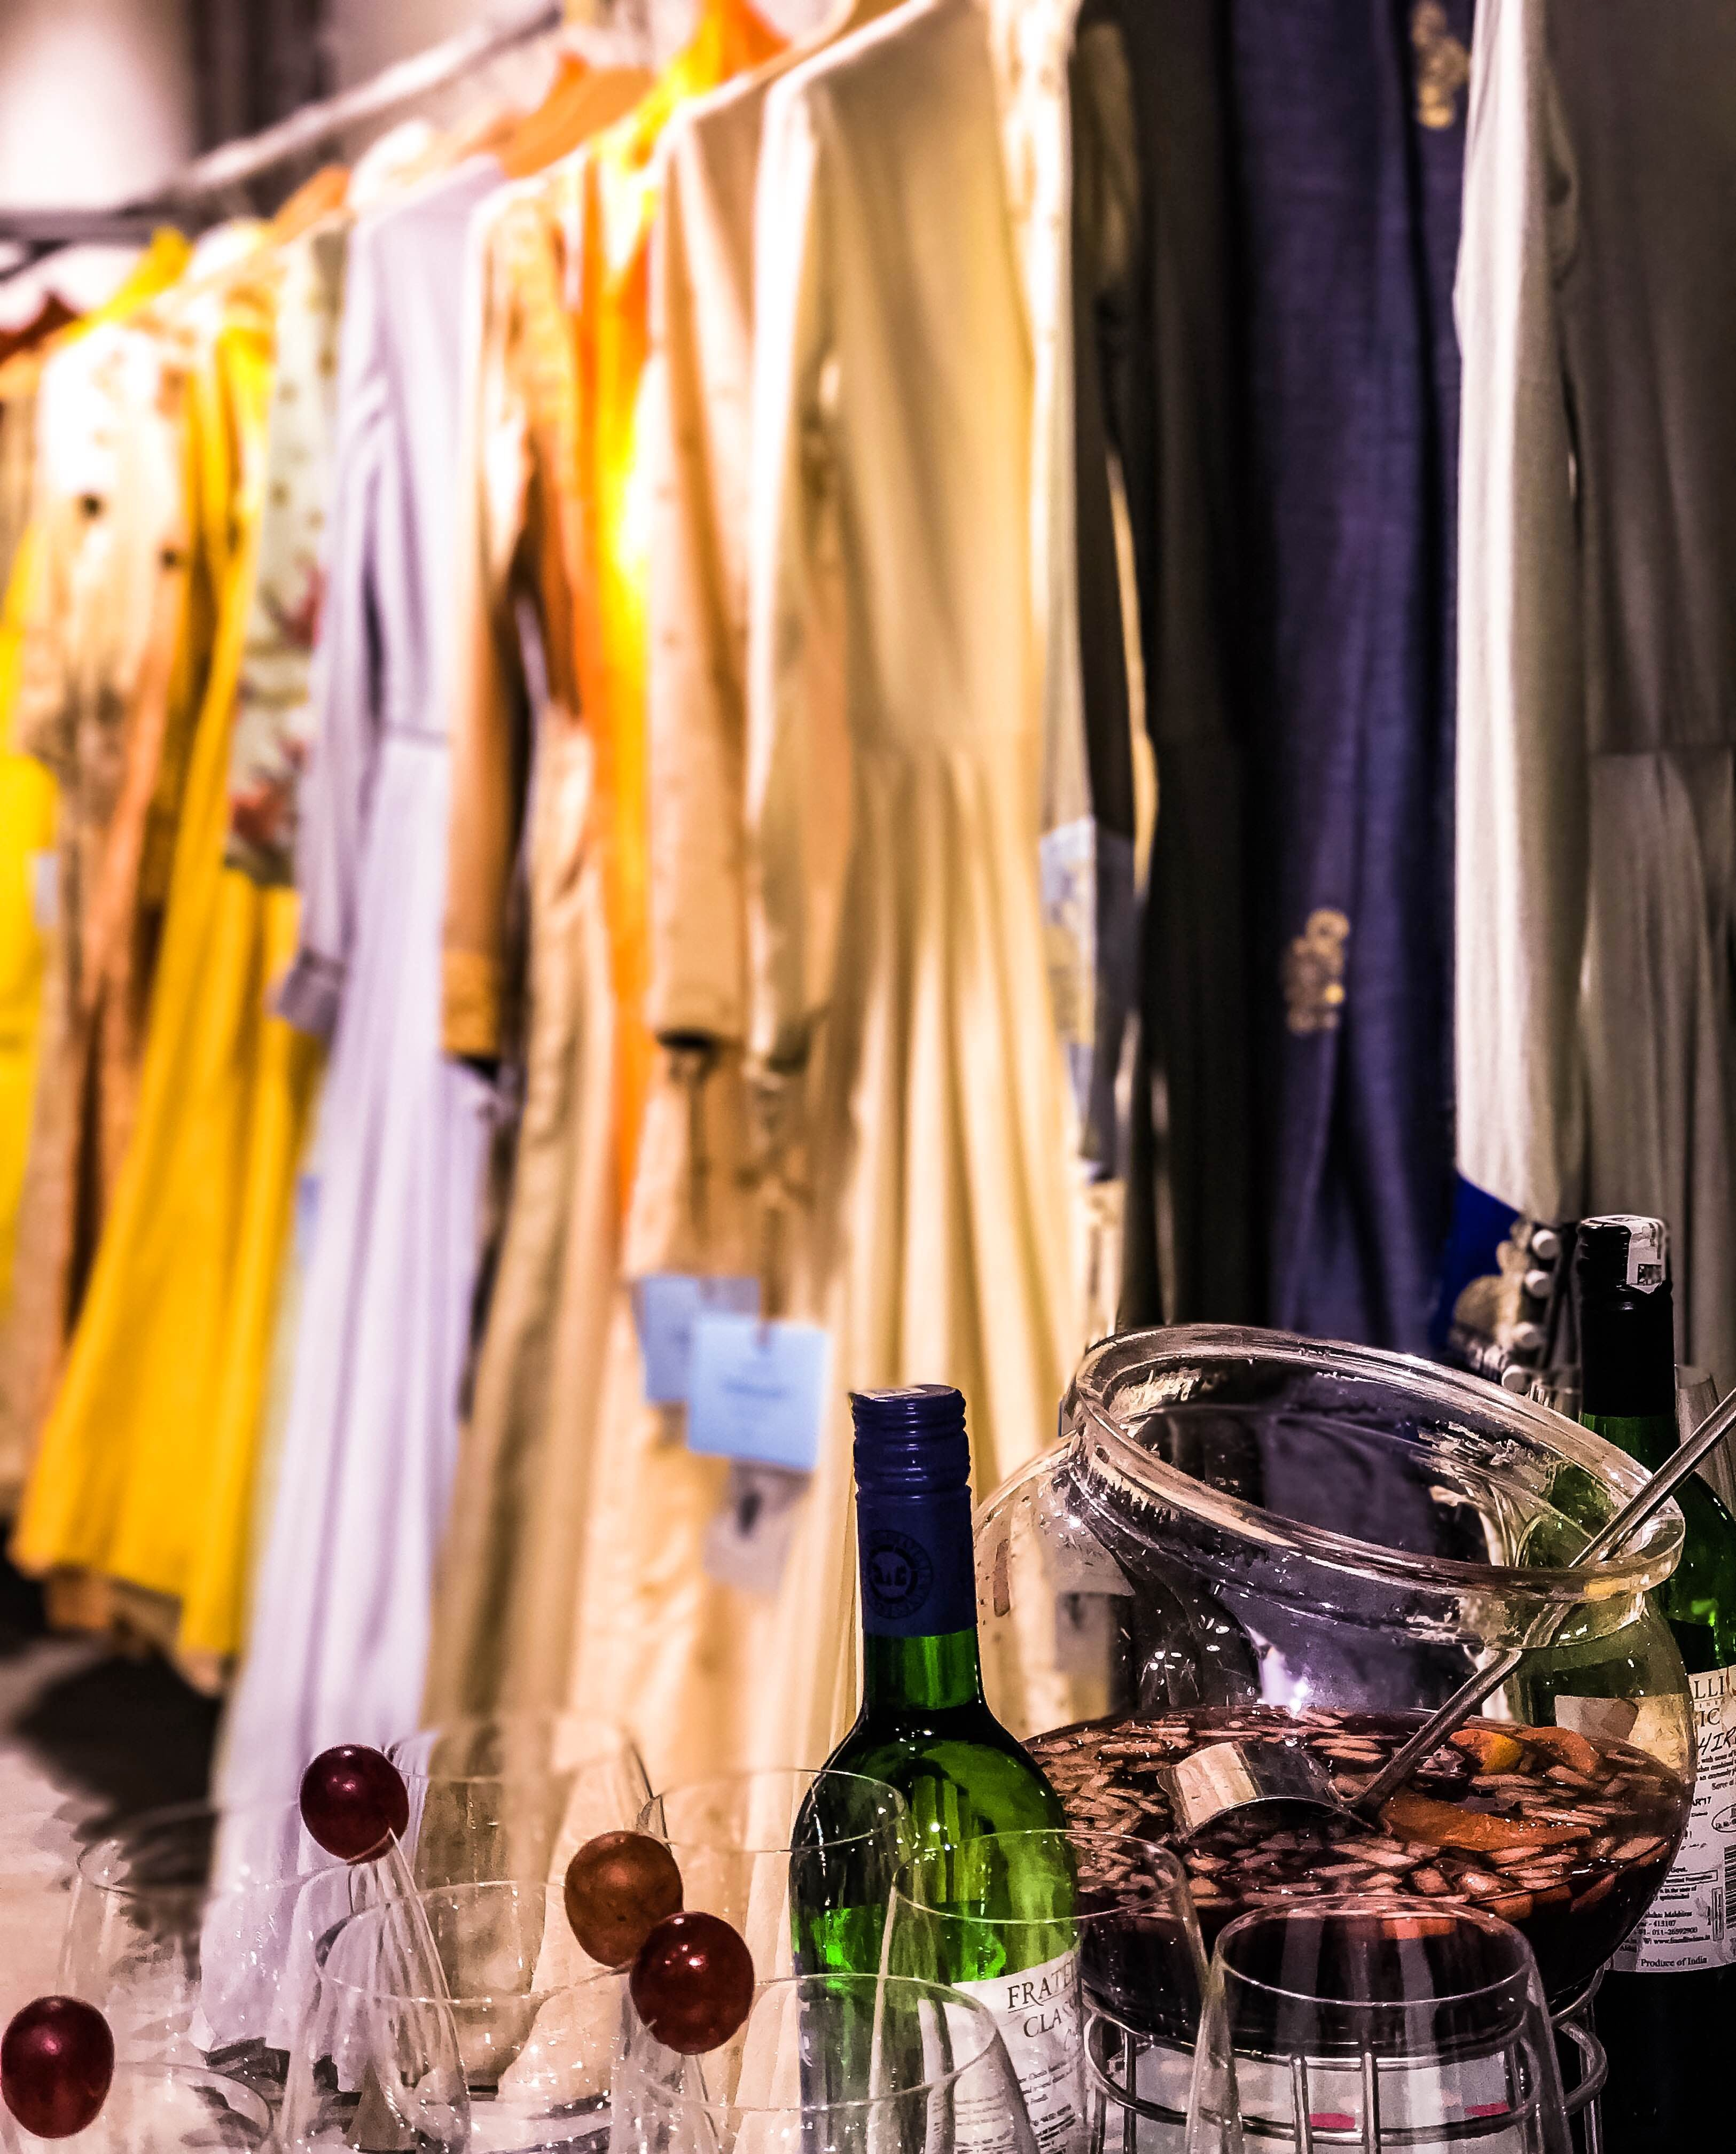 Yellow,Room,Textile,Stemware,Glass,Glass bottle,Drink,Wine glass,Dress,Curtain